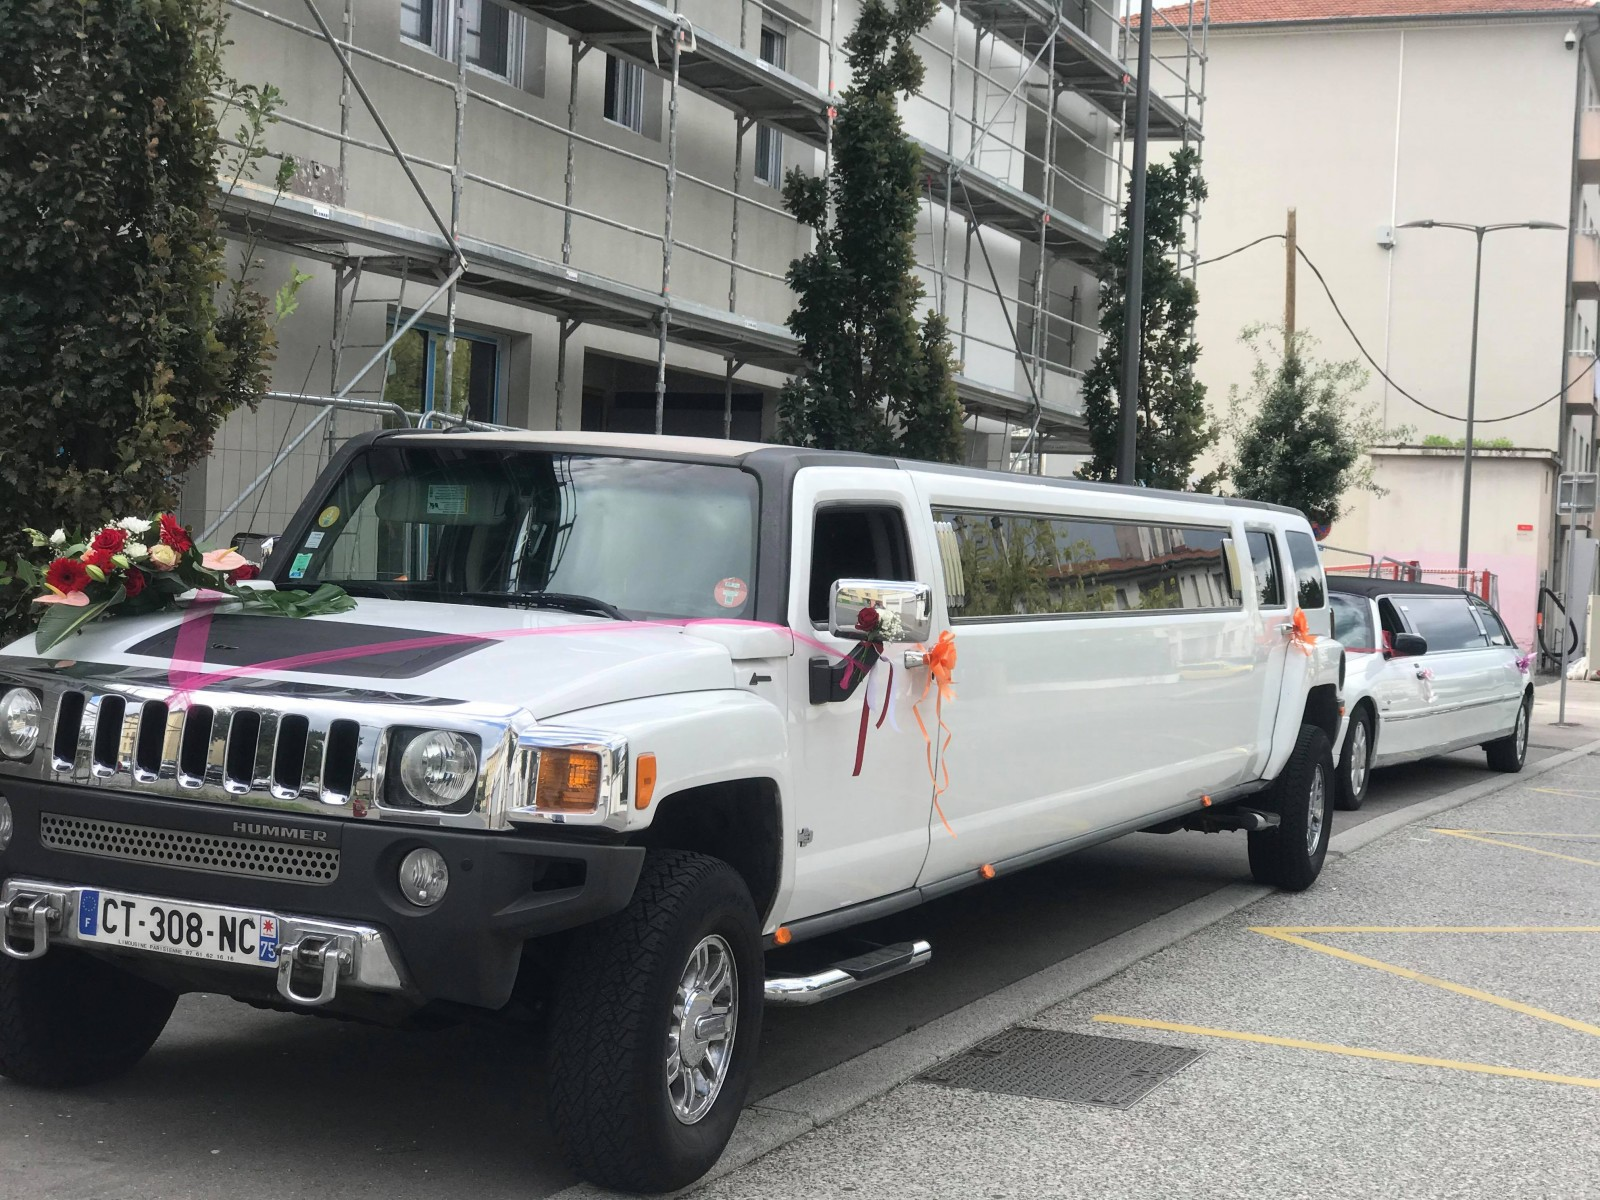 location limousines lyon, Transfert